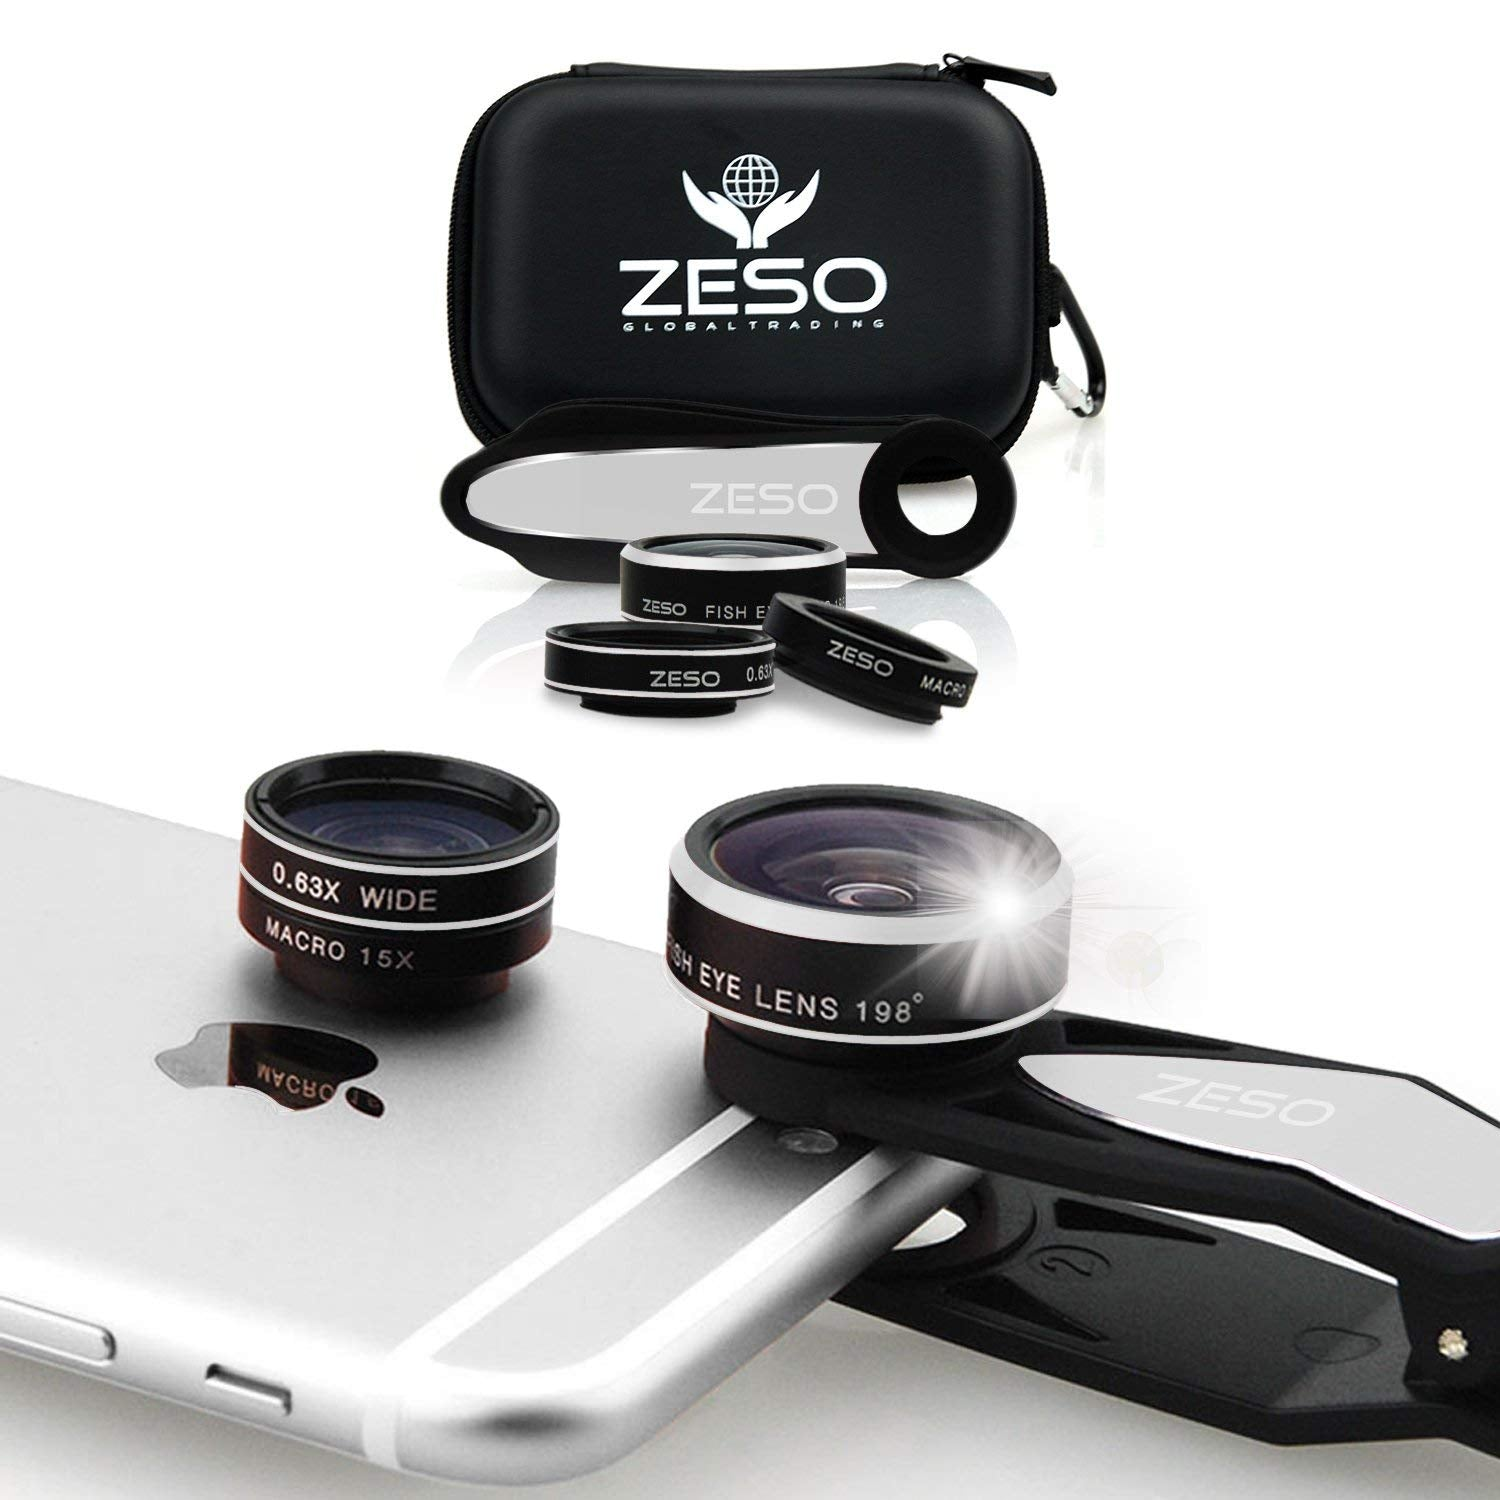 3d Printers & Supplies 600tvl, 20 Meter Ca Sale Price Deep Water Camera Set With 7 Inch Monitor And Carrying Case